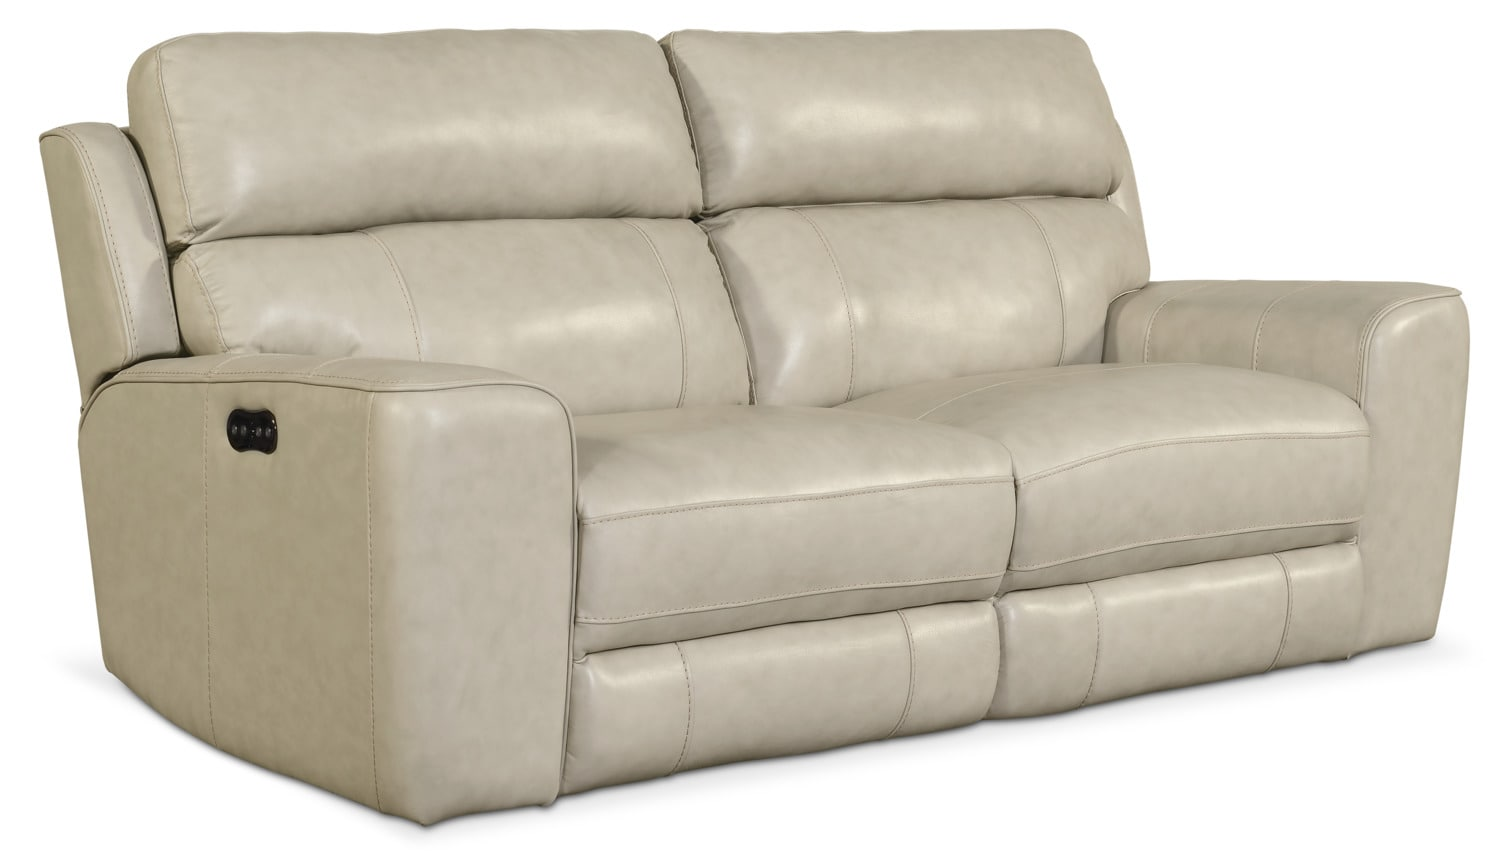 Cream Leather Recliner Sofa Remi 3 Piece Reclining Sofa